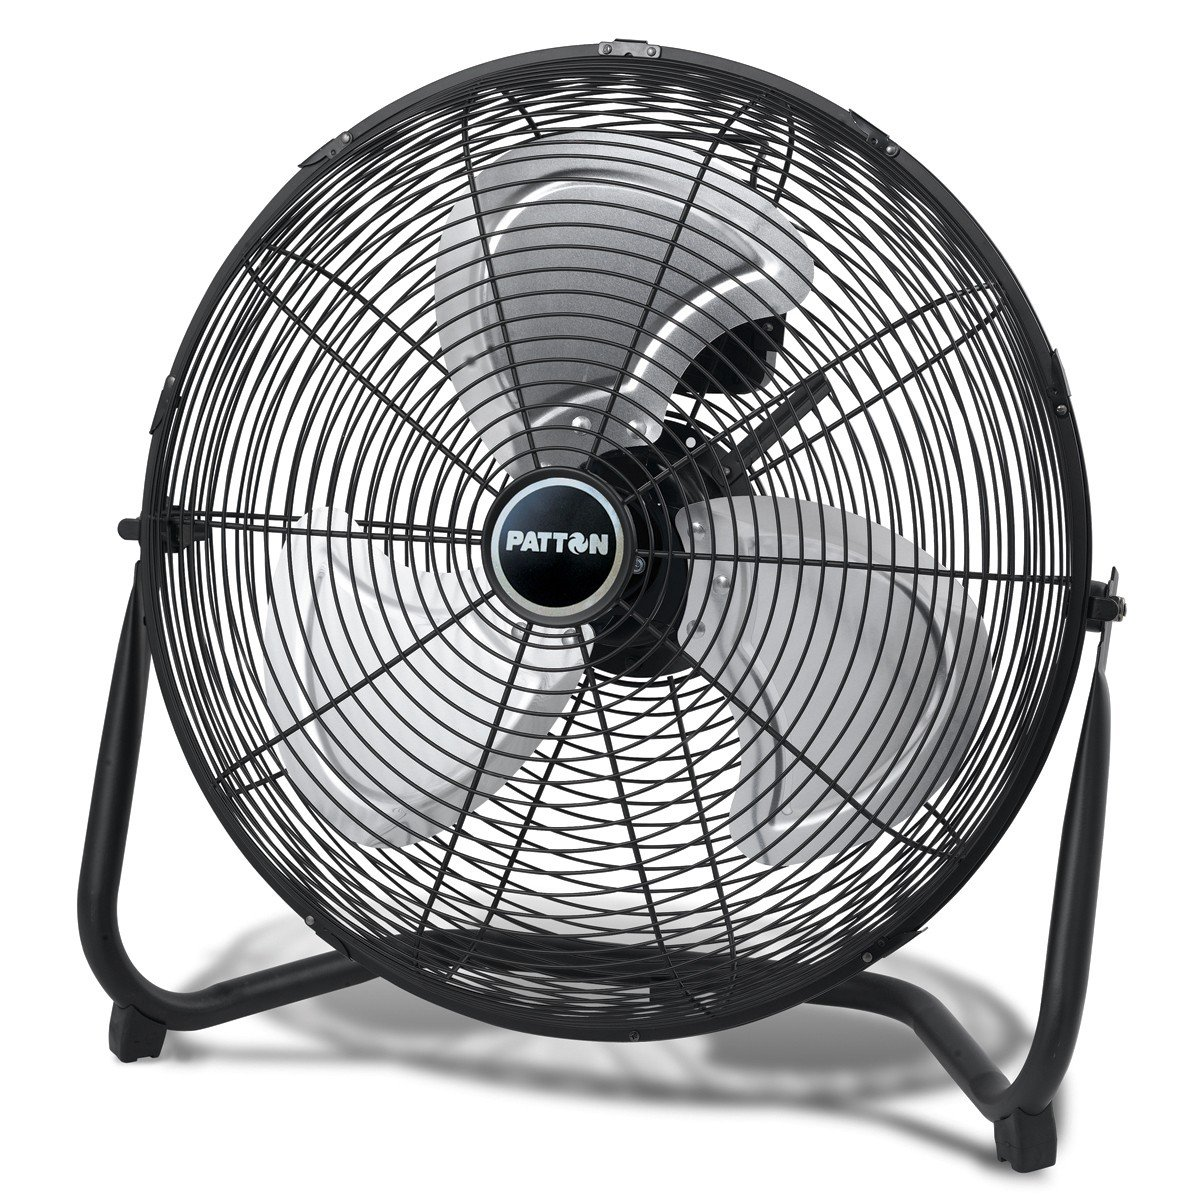 Patton High Velocity Fan, 18-Inch